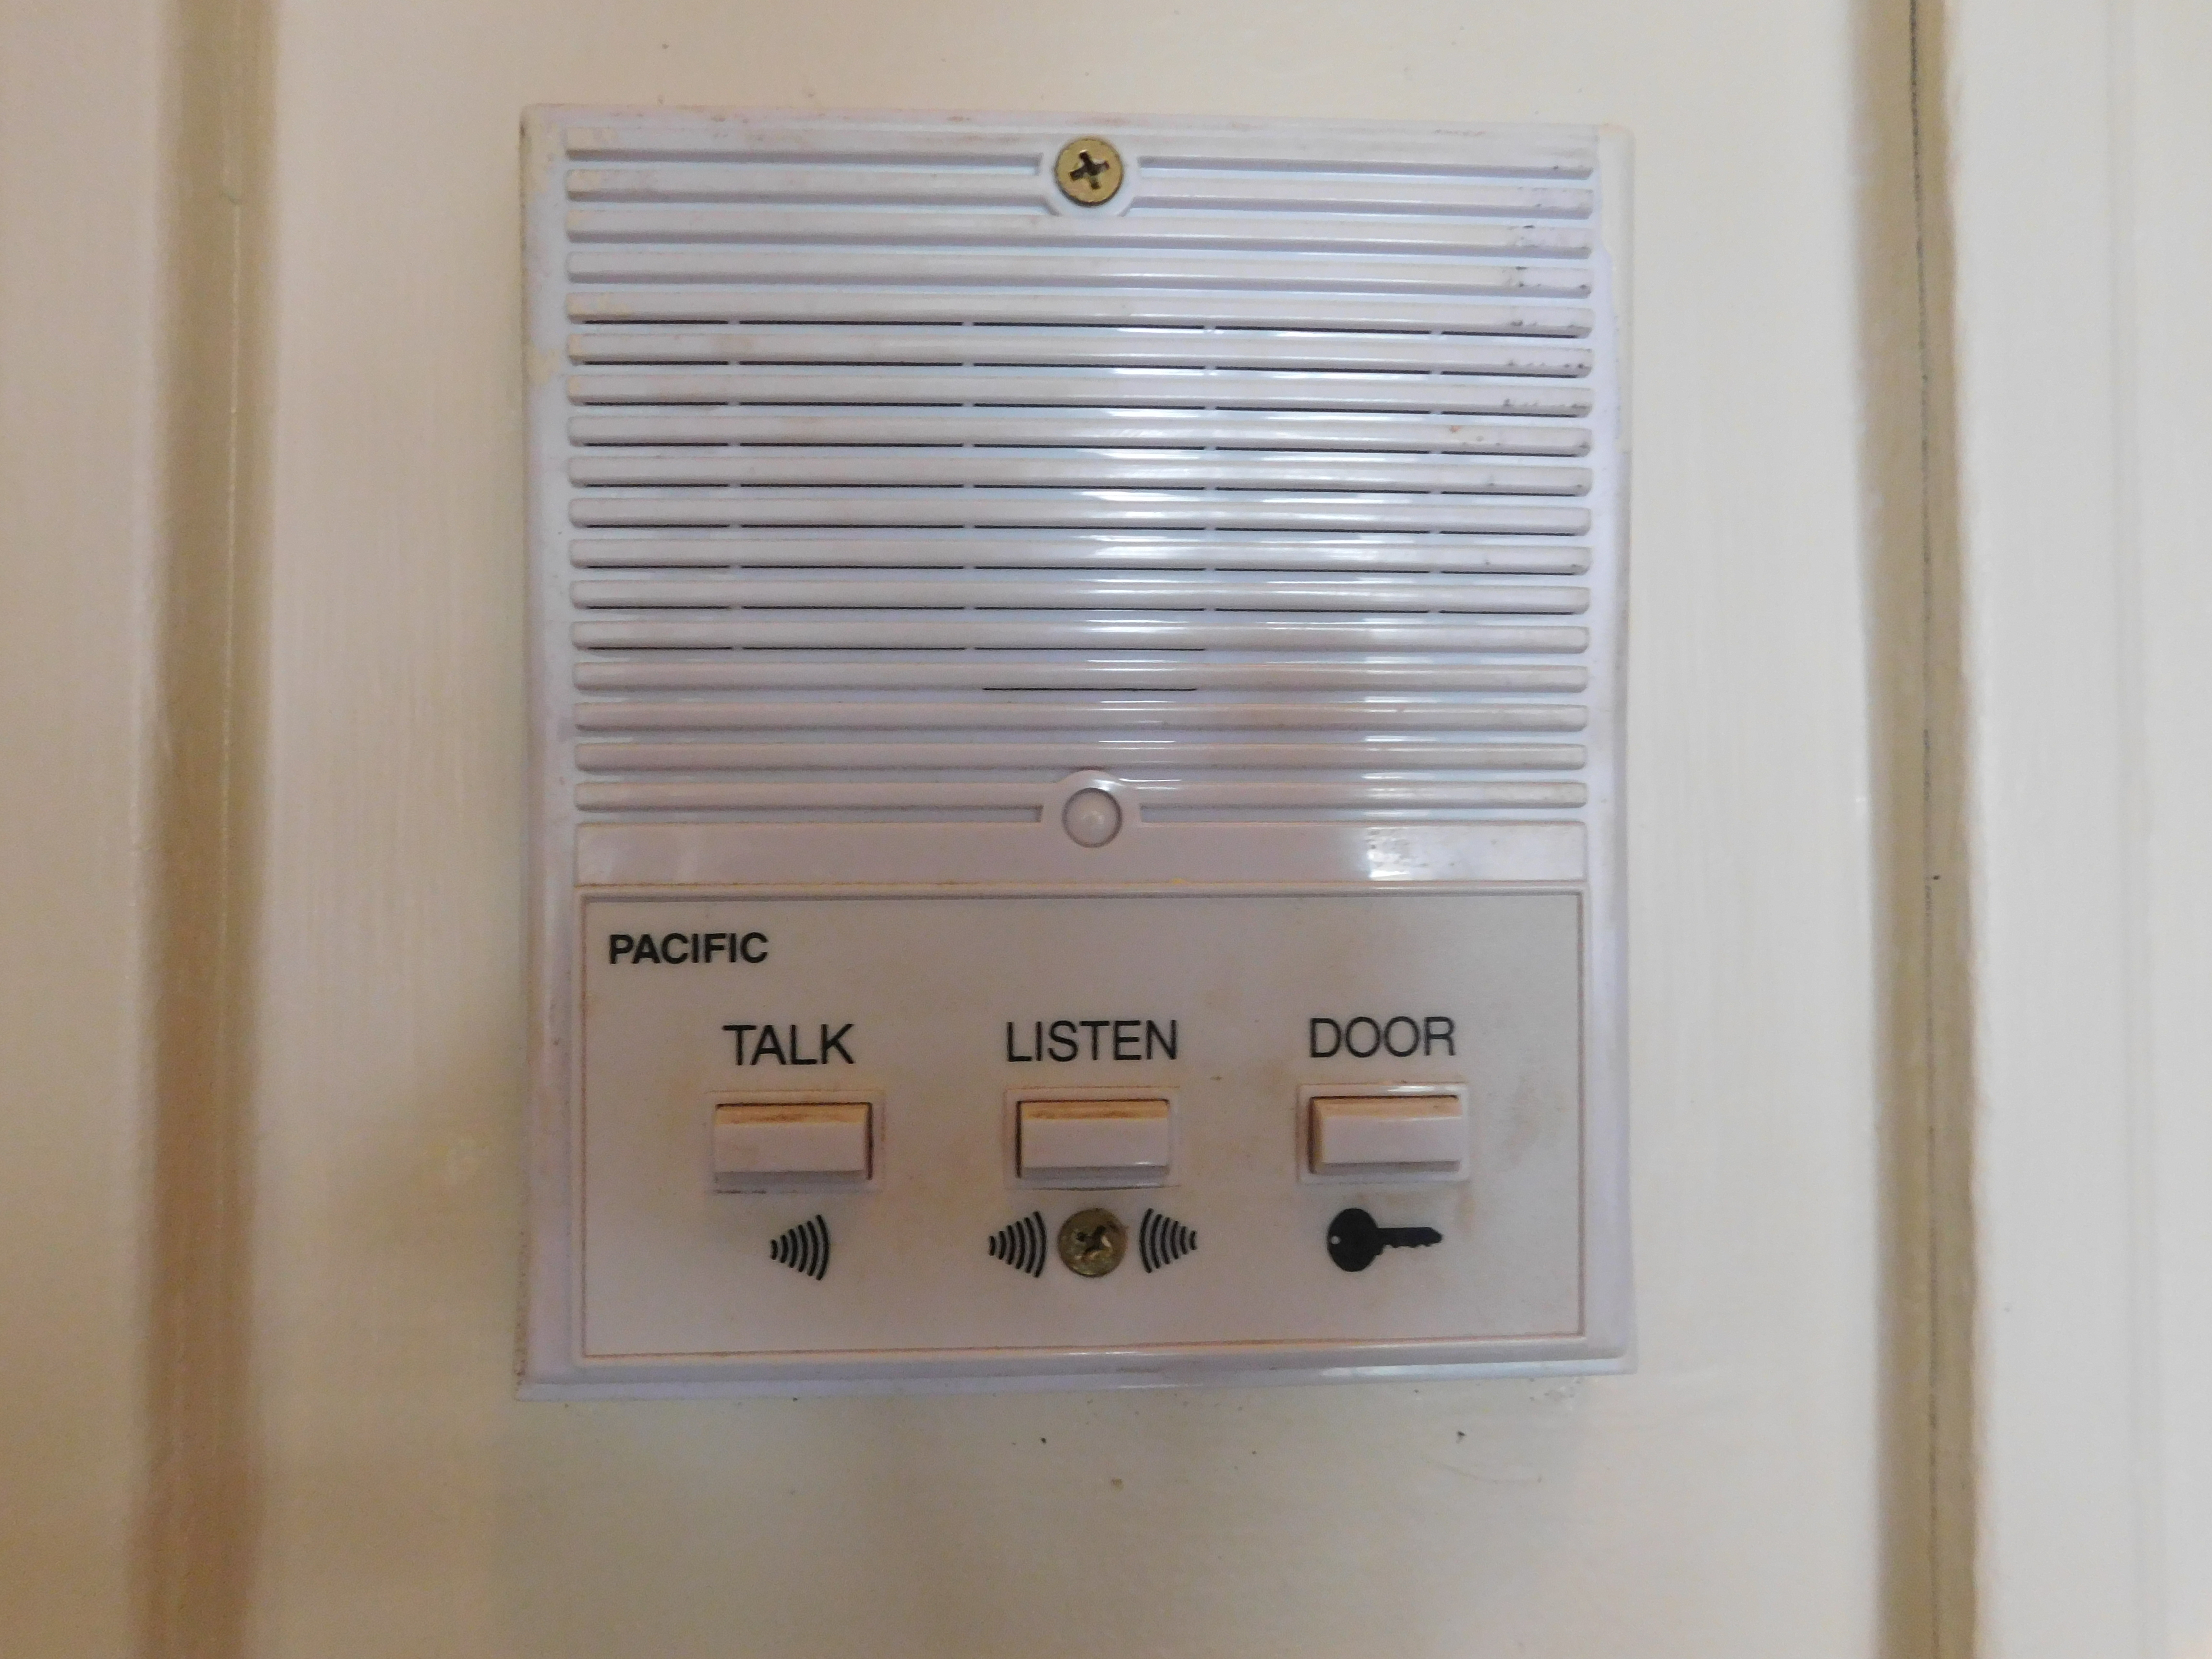 Intercom & Door Buzzer